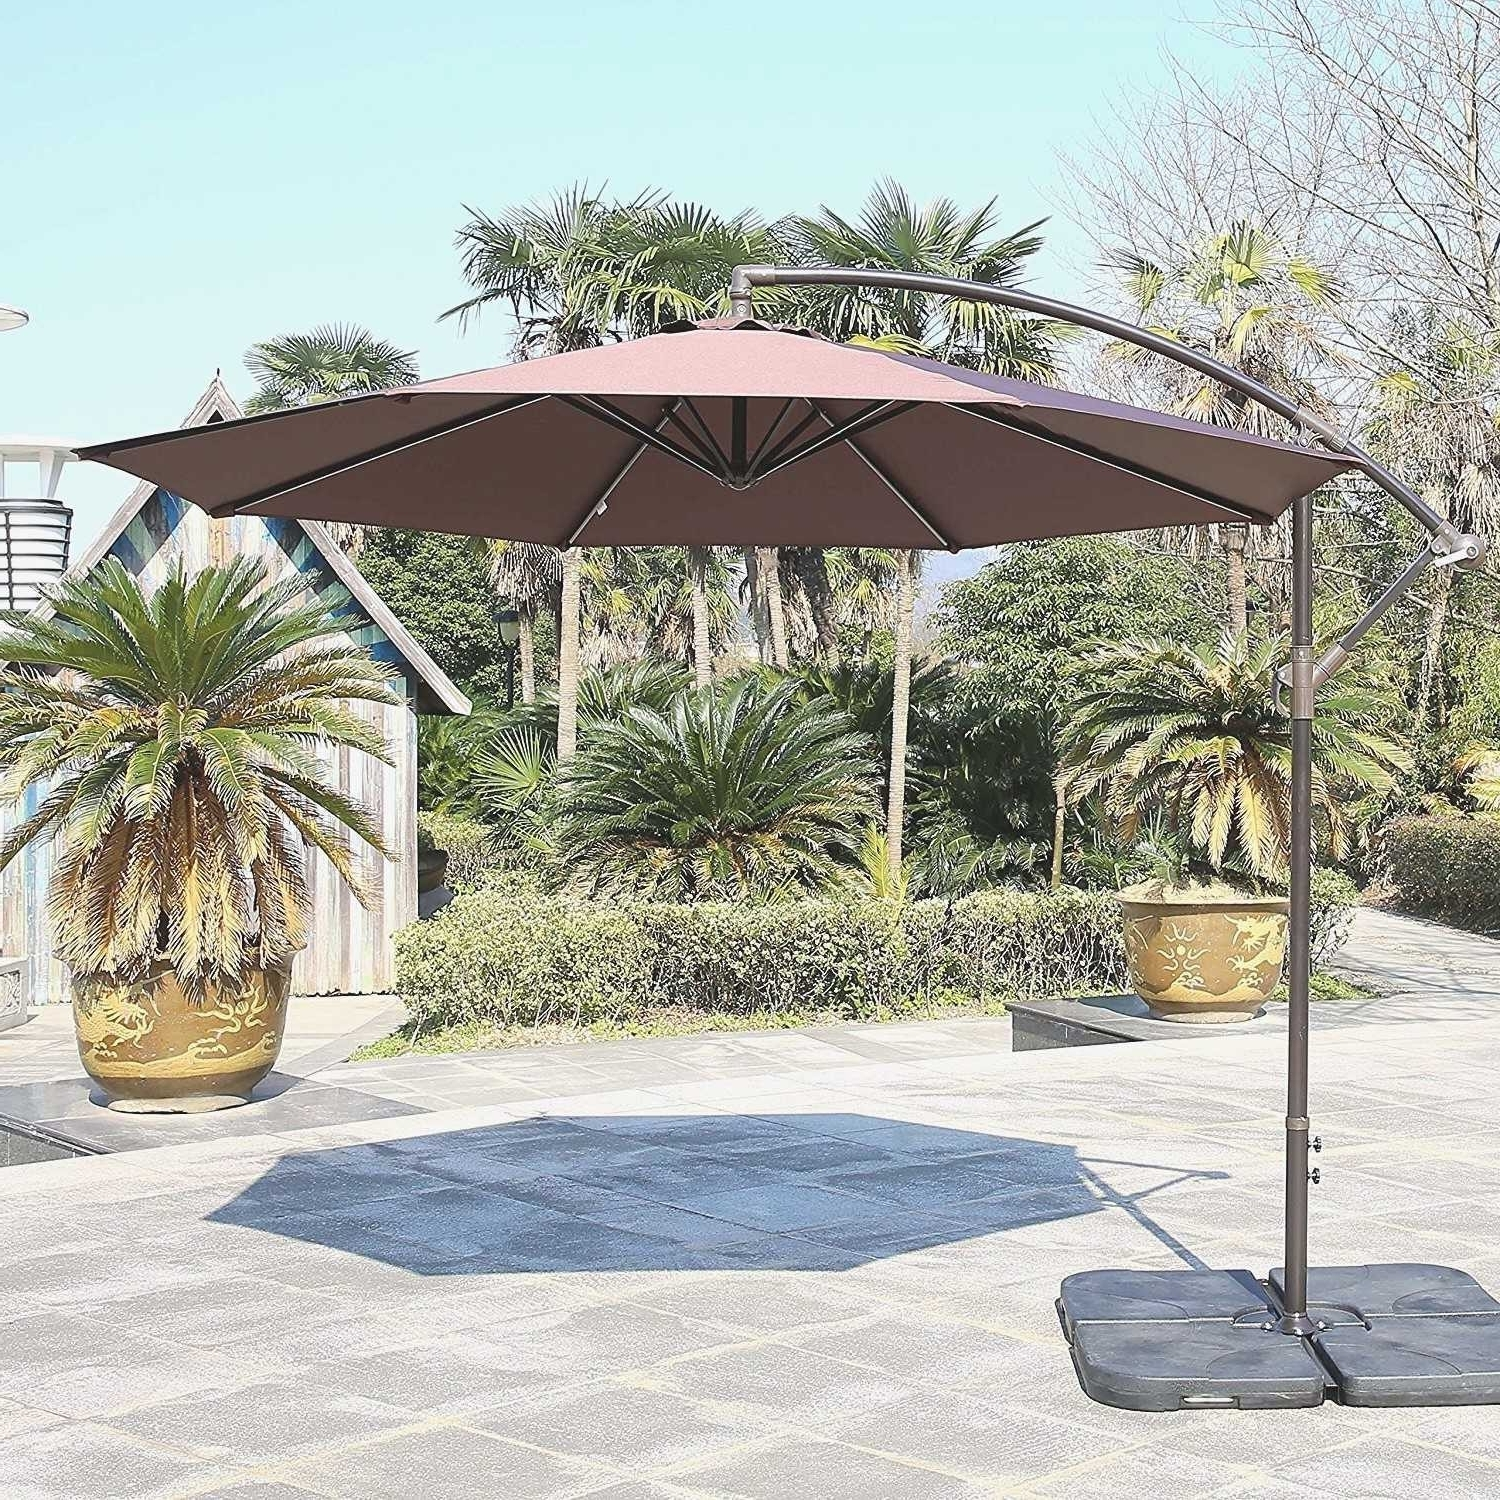 Fashionable Striped Sunbrella Patio Umbrellas In Tips: Best Frontgate Umbrellas With Sunbrella Striped Patio Umbrella (View 9 of 20)